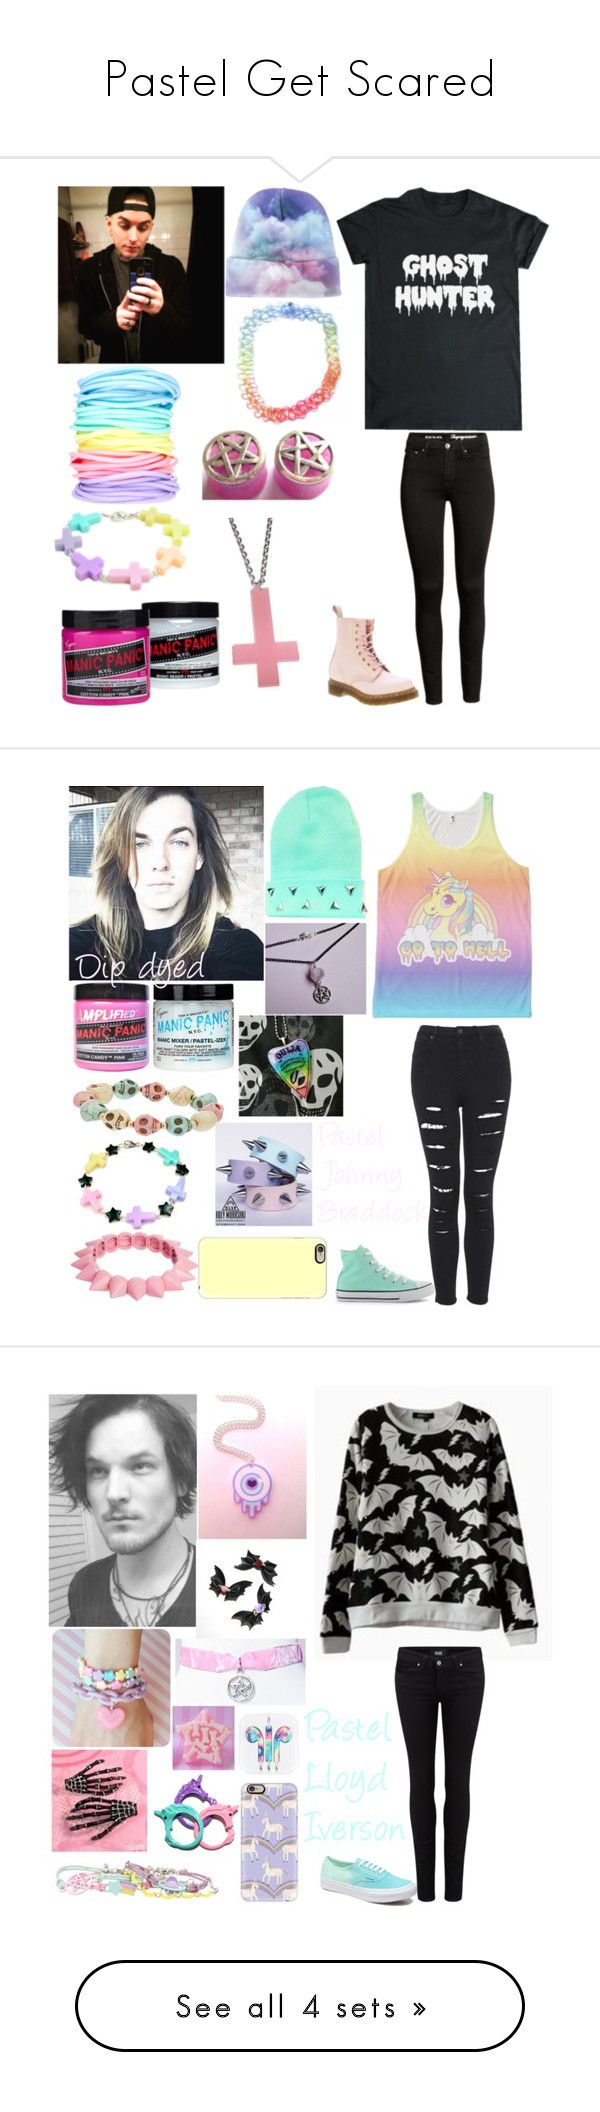 "8413a8942adeab785efce99c3c2c9c30 - ""Pastel Get Scared"" by katlanacross ❤ liked on Polyvore featuring Dr. Martens,..."